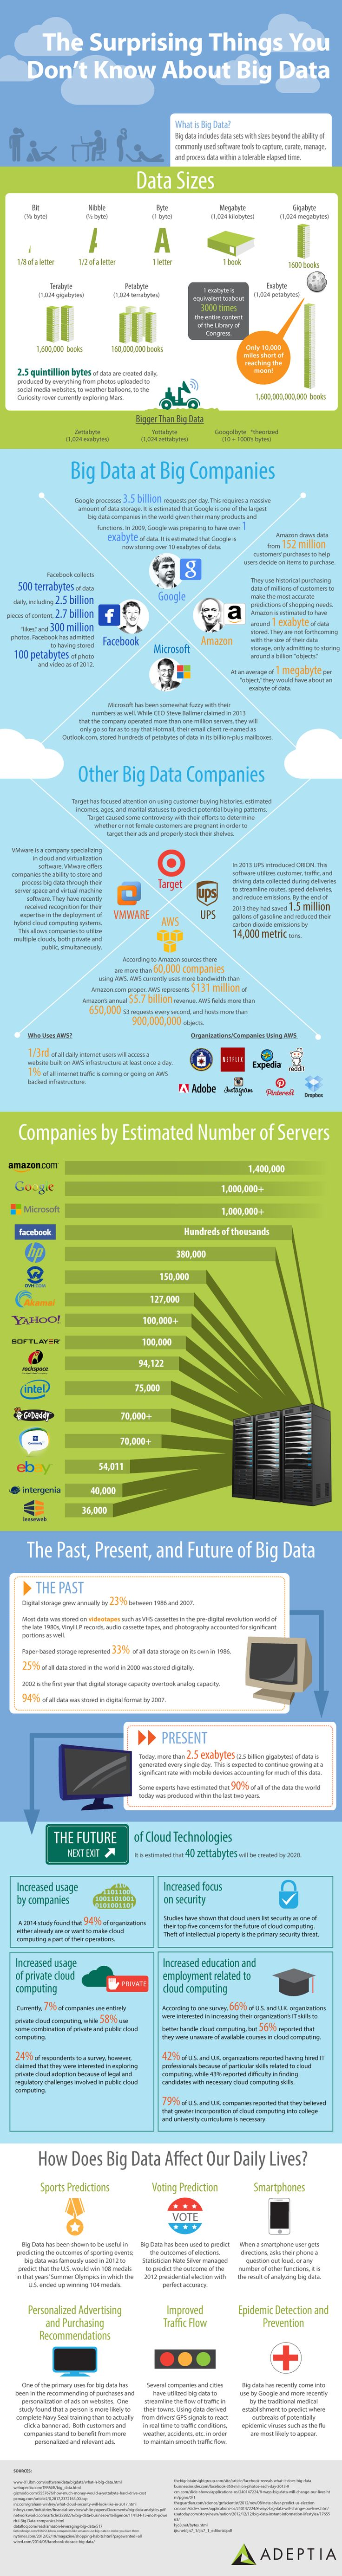 The Surprising Things You Don't Know About Big Data #infographic